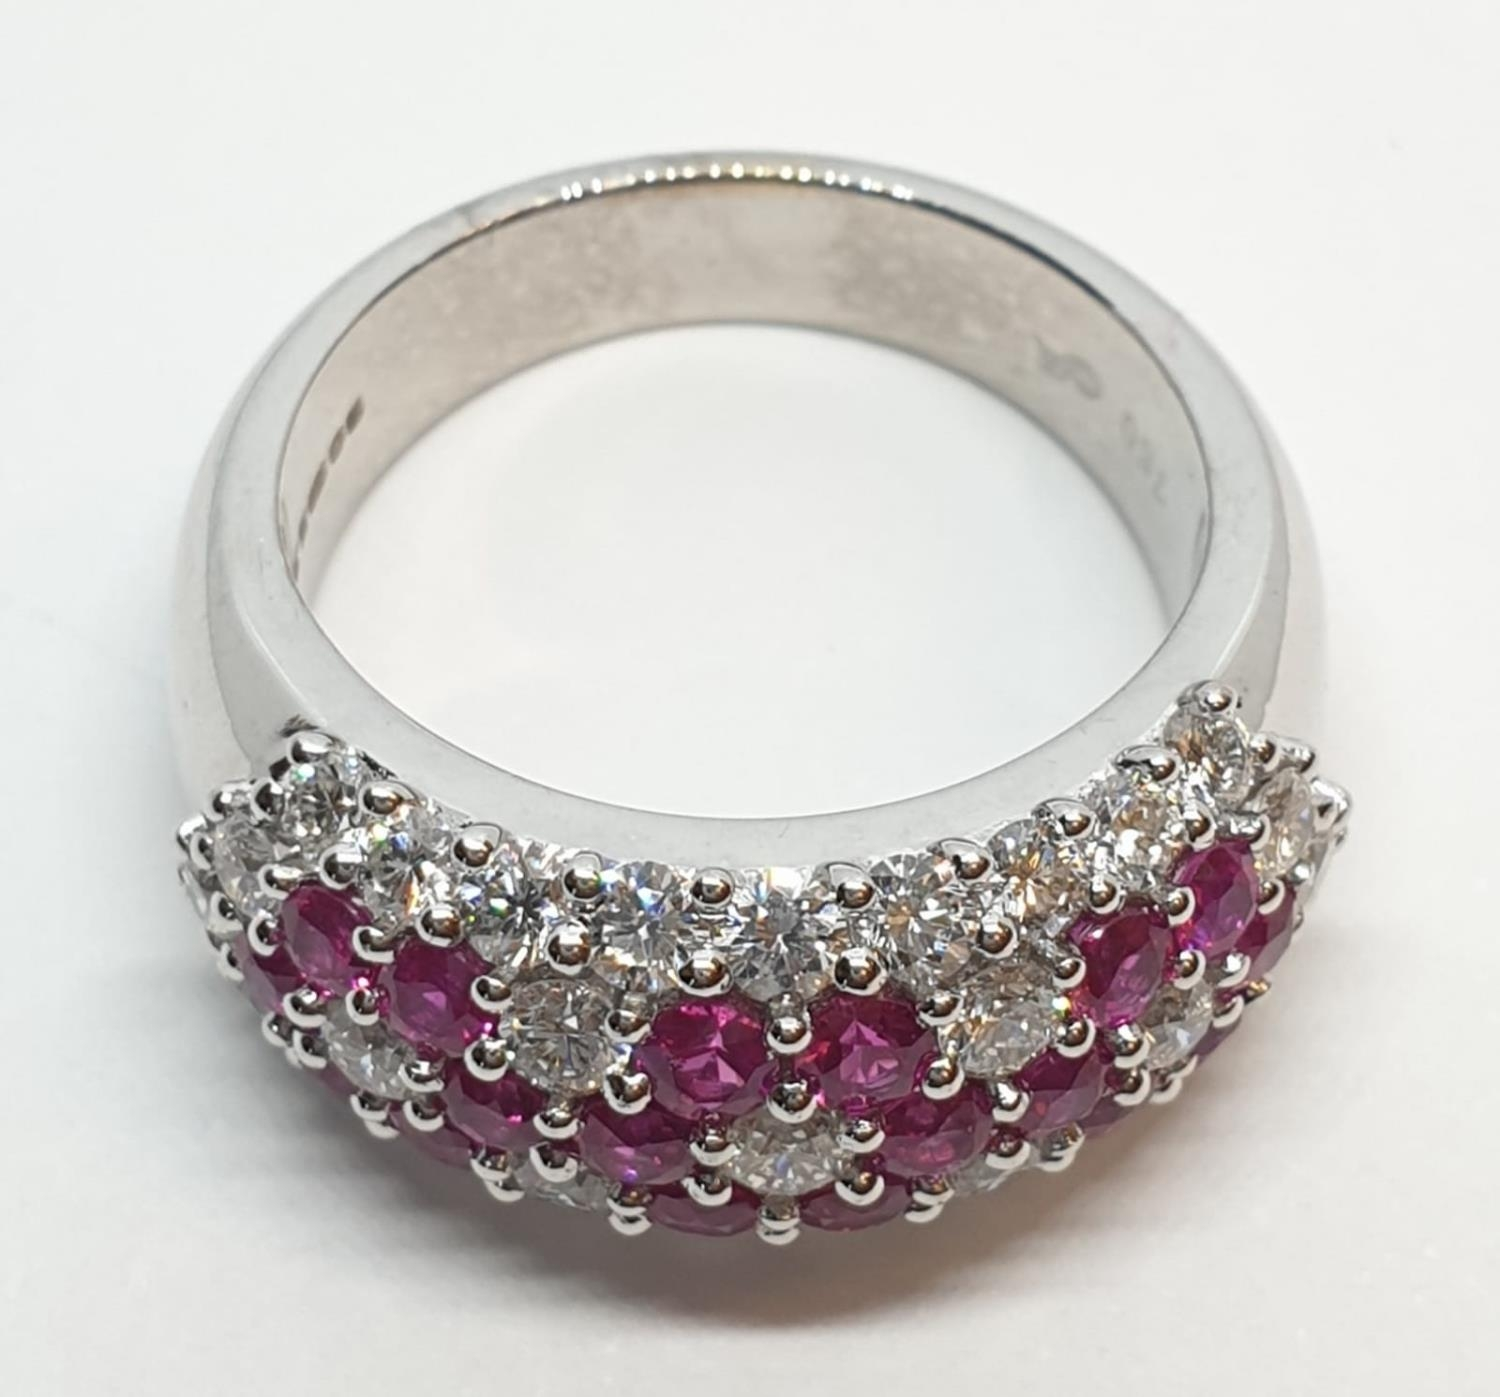 18ct white gold ring with over 1ct ruby and 1.8ct diamonds in flower design, weight 9.39g and size M - Image 4 of 11